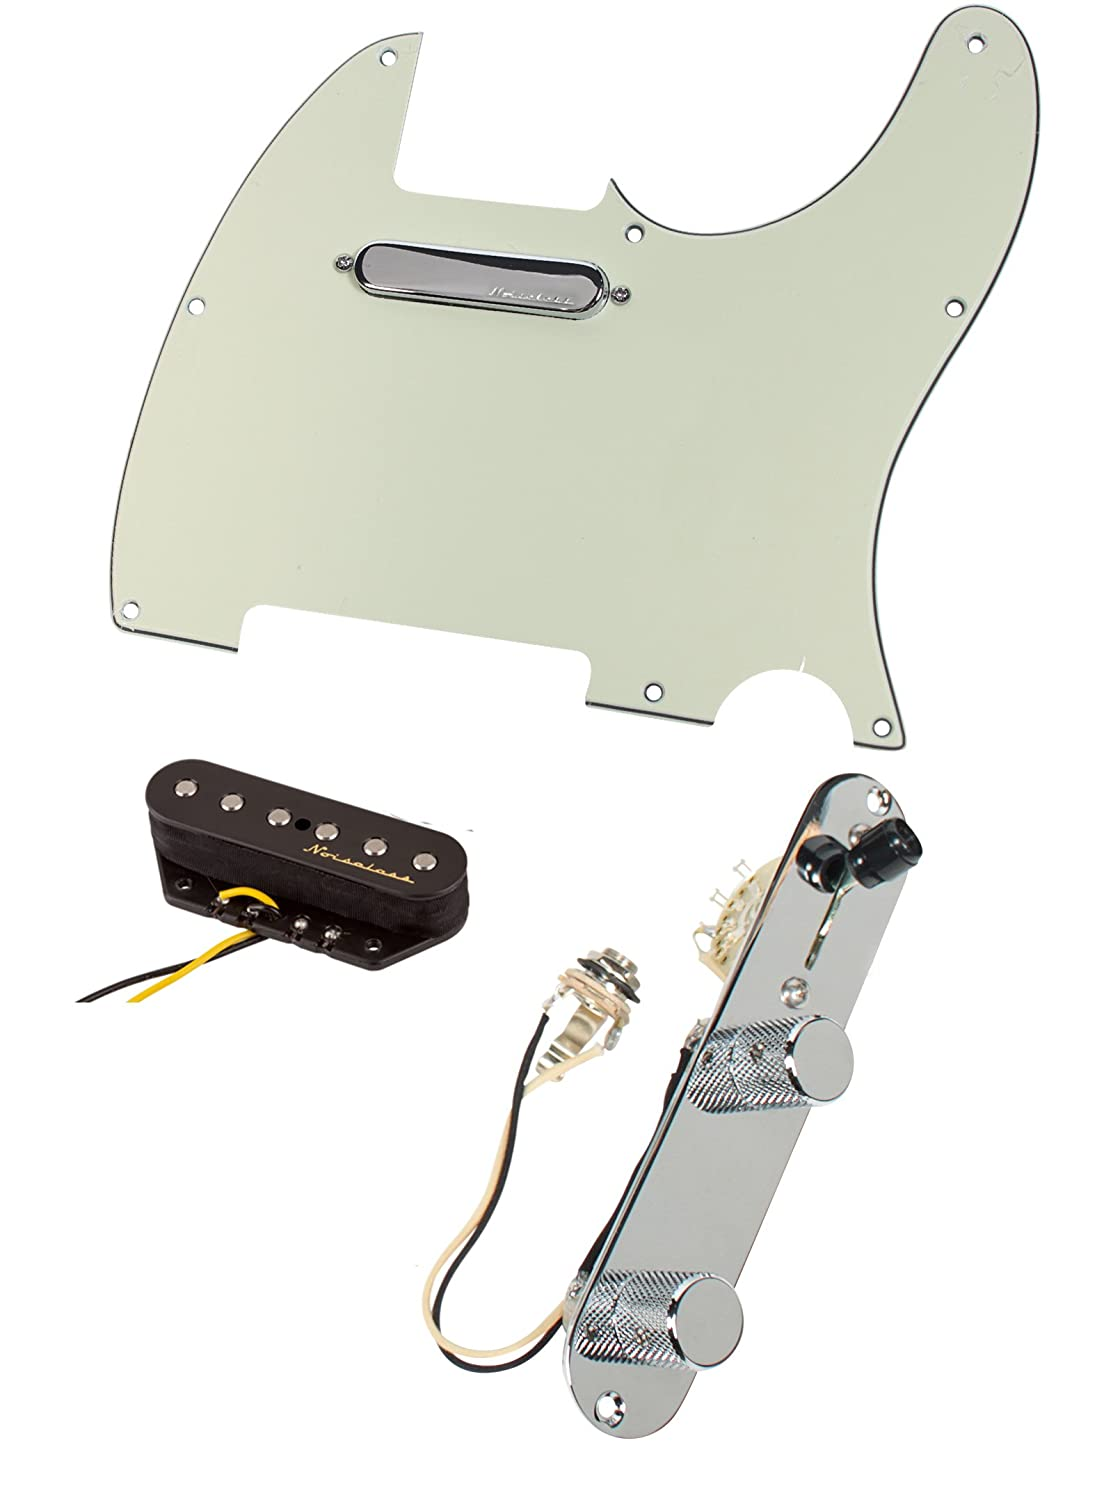 Fender Vintage Noiseless Pickups Wiring Diagram 47 Noise Less Further Gibson P 90 Pickup Sl1500 Amazon Com Tele Telecaster Loaded Pre Wired Pickguard